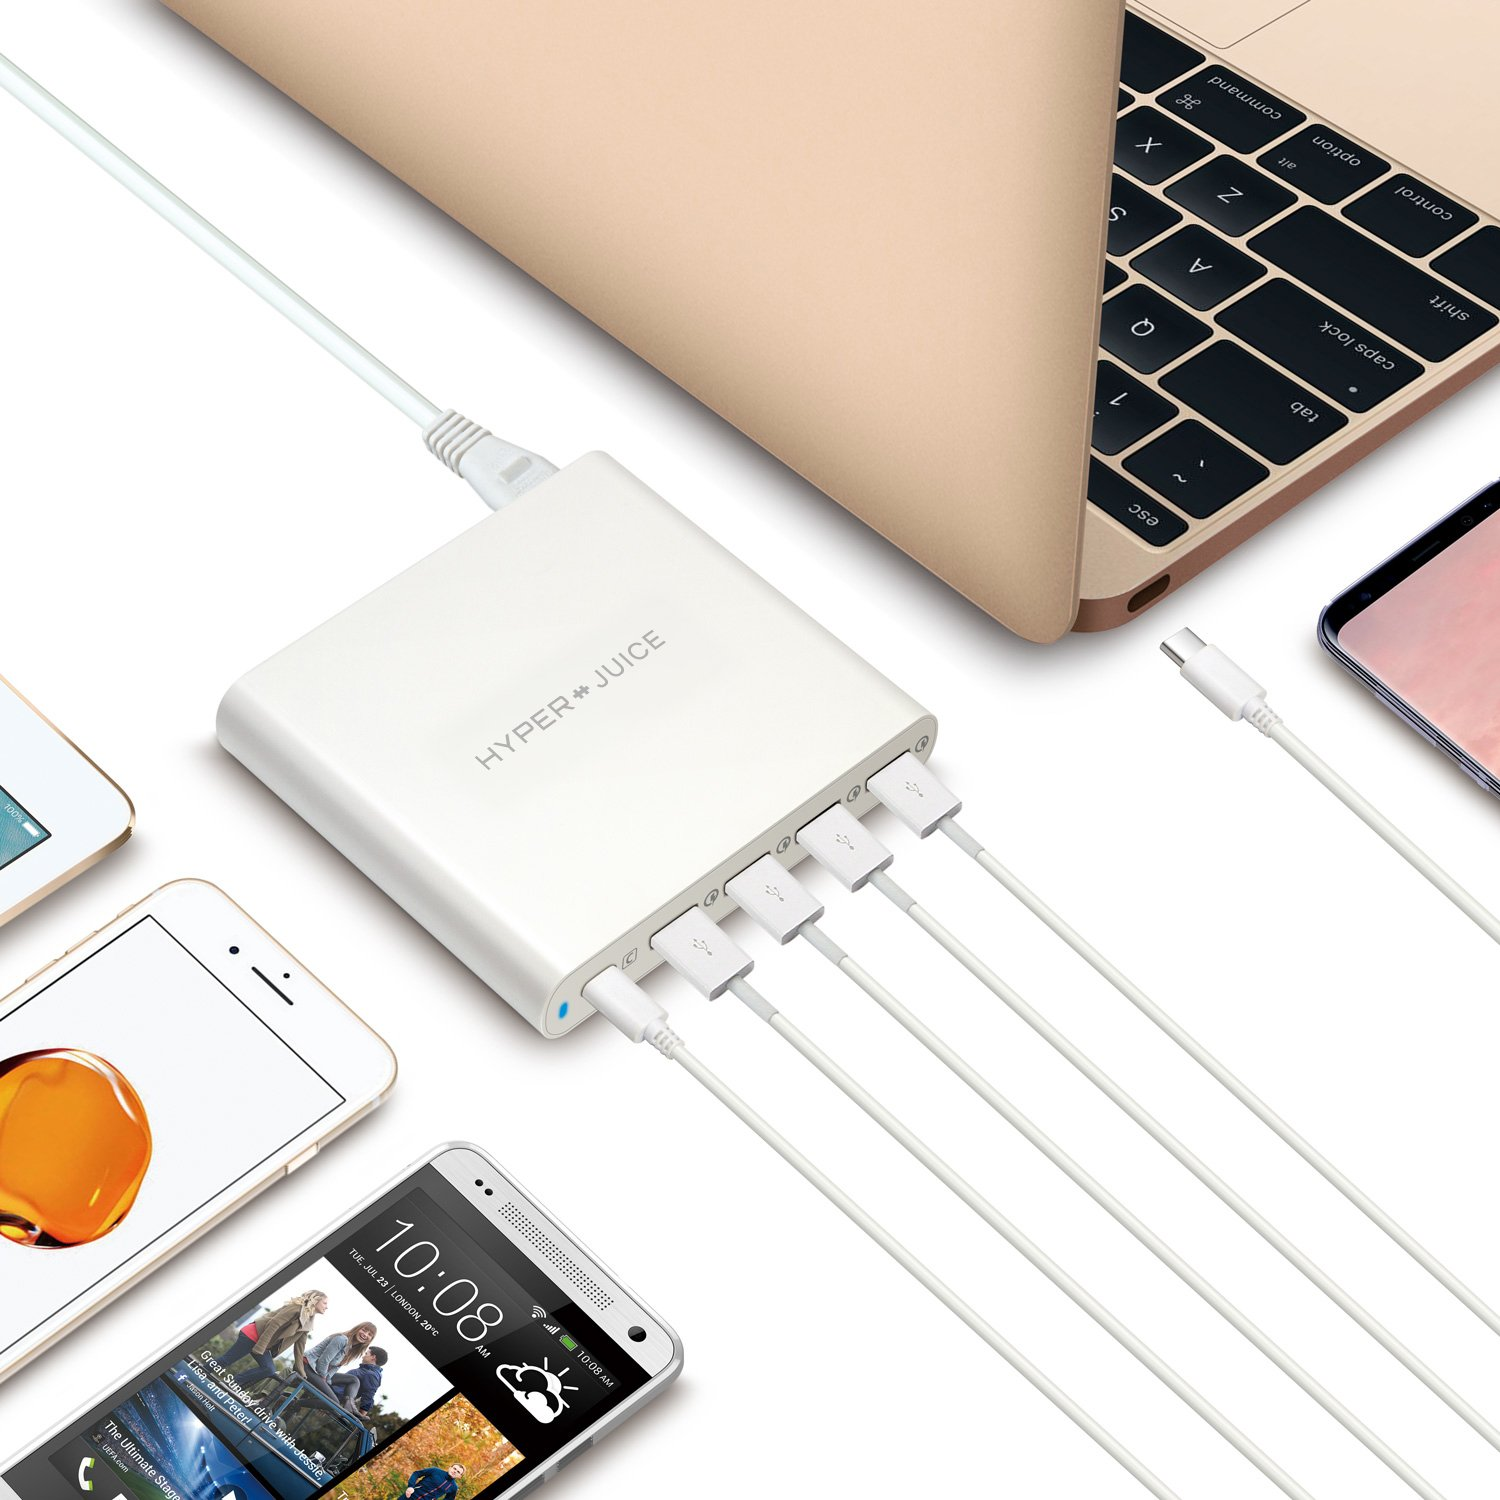 HyperJuice 80W USB-C Charger with 4 x QC 3.0 USB